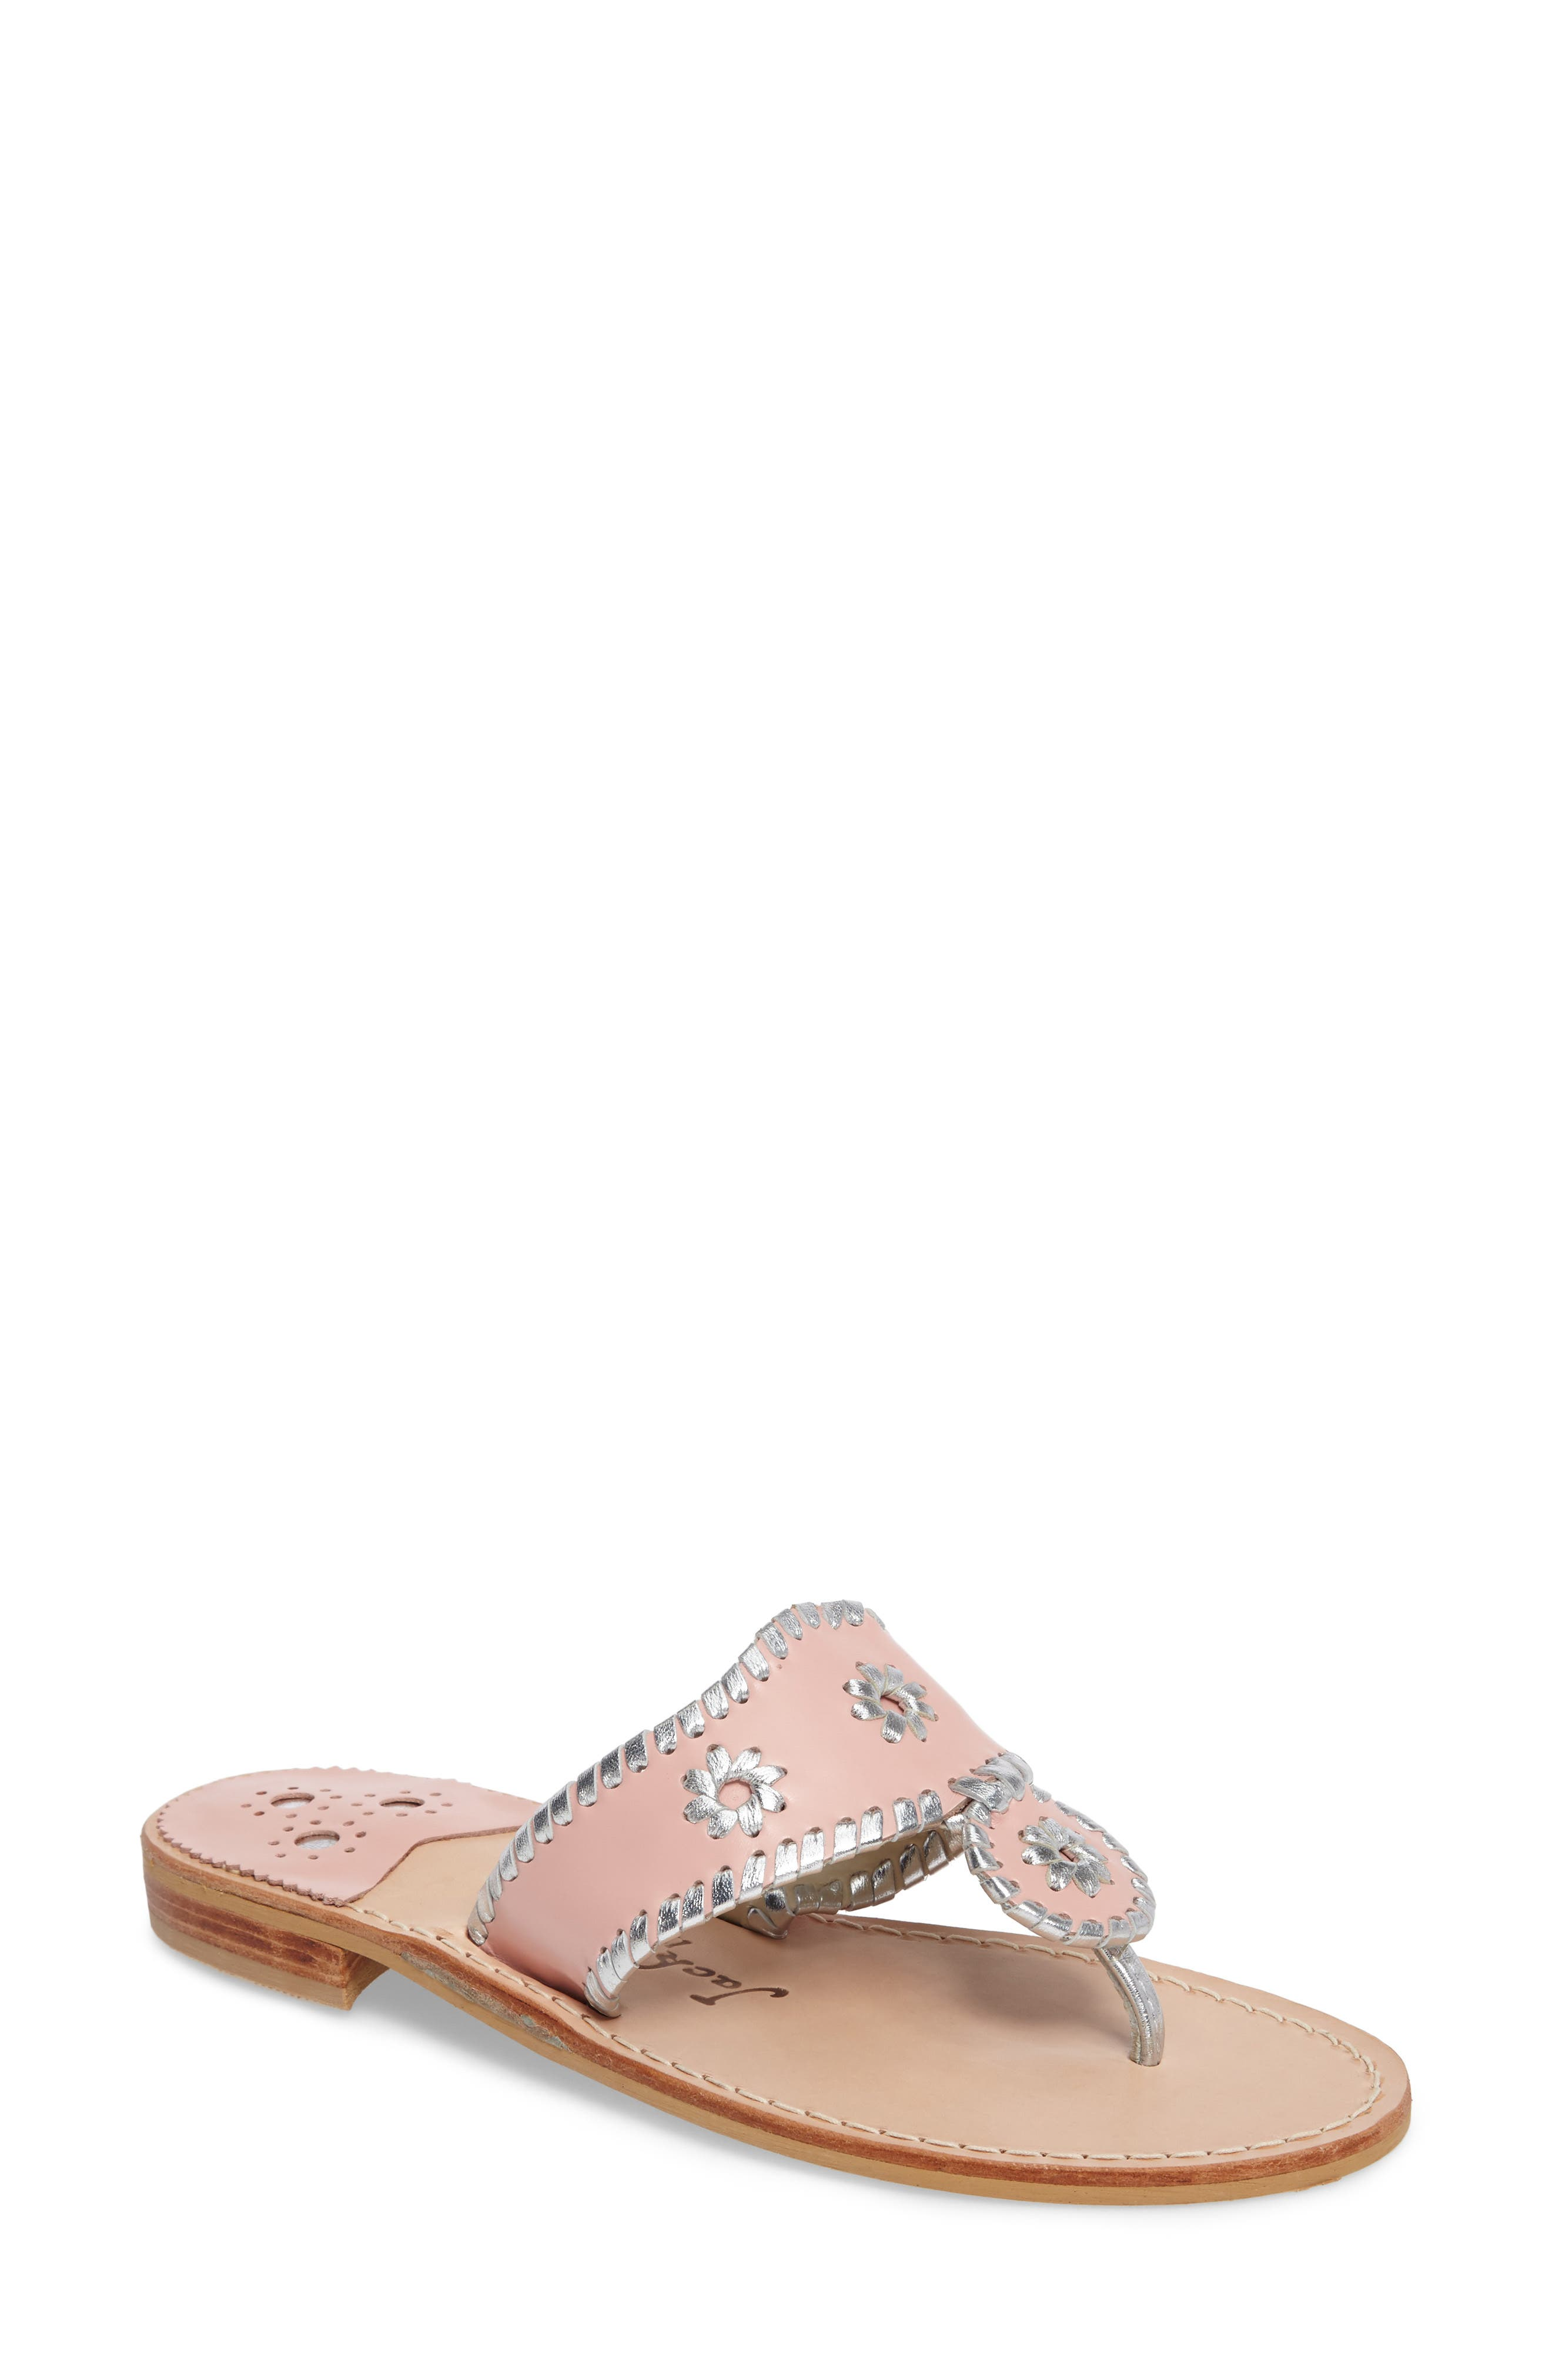 Women's jelly sandals size 10 - Women's Jelly Sandals Size 10 29